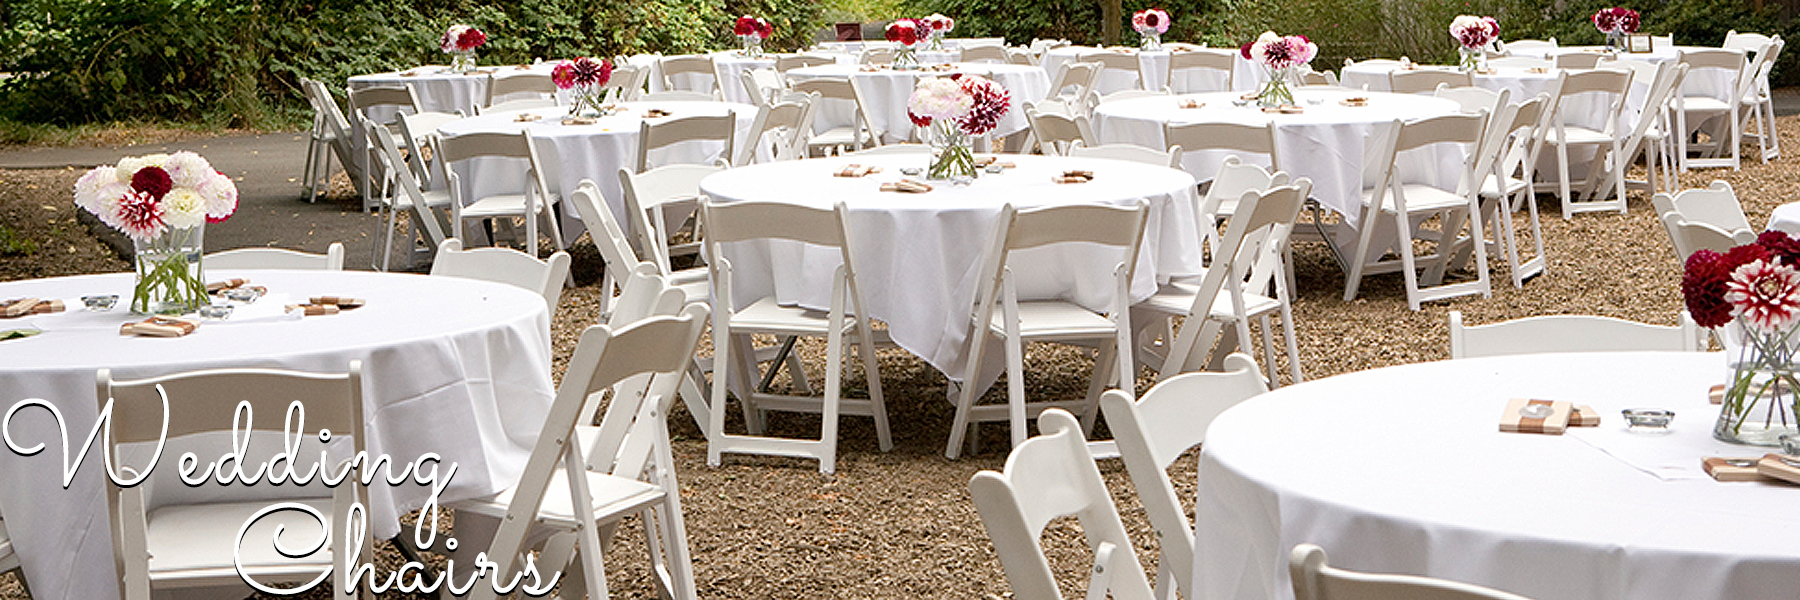 & Folding Tables Folding Chairs u0026 Chiavari Chairs - Event Furniture Sales